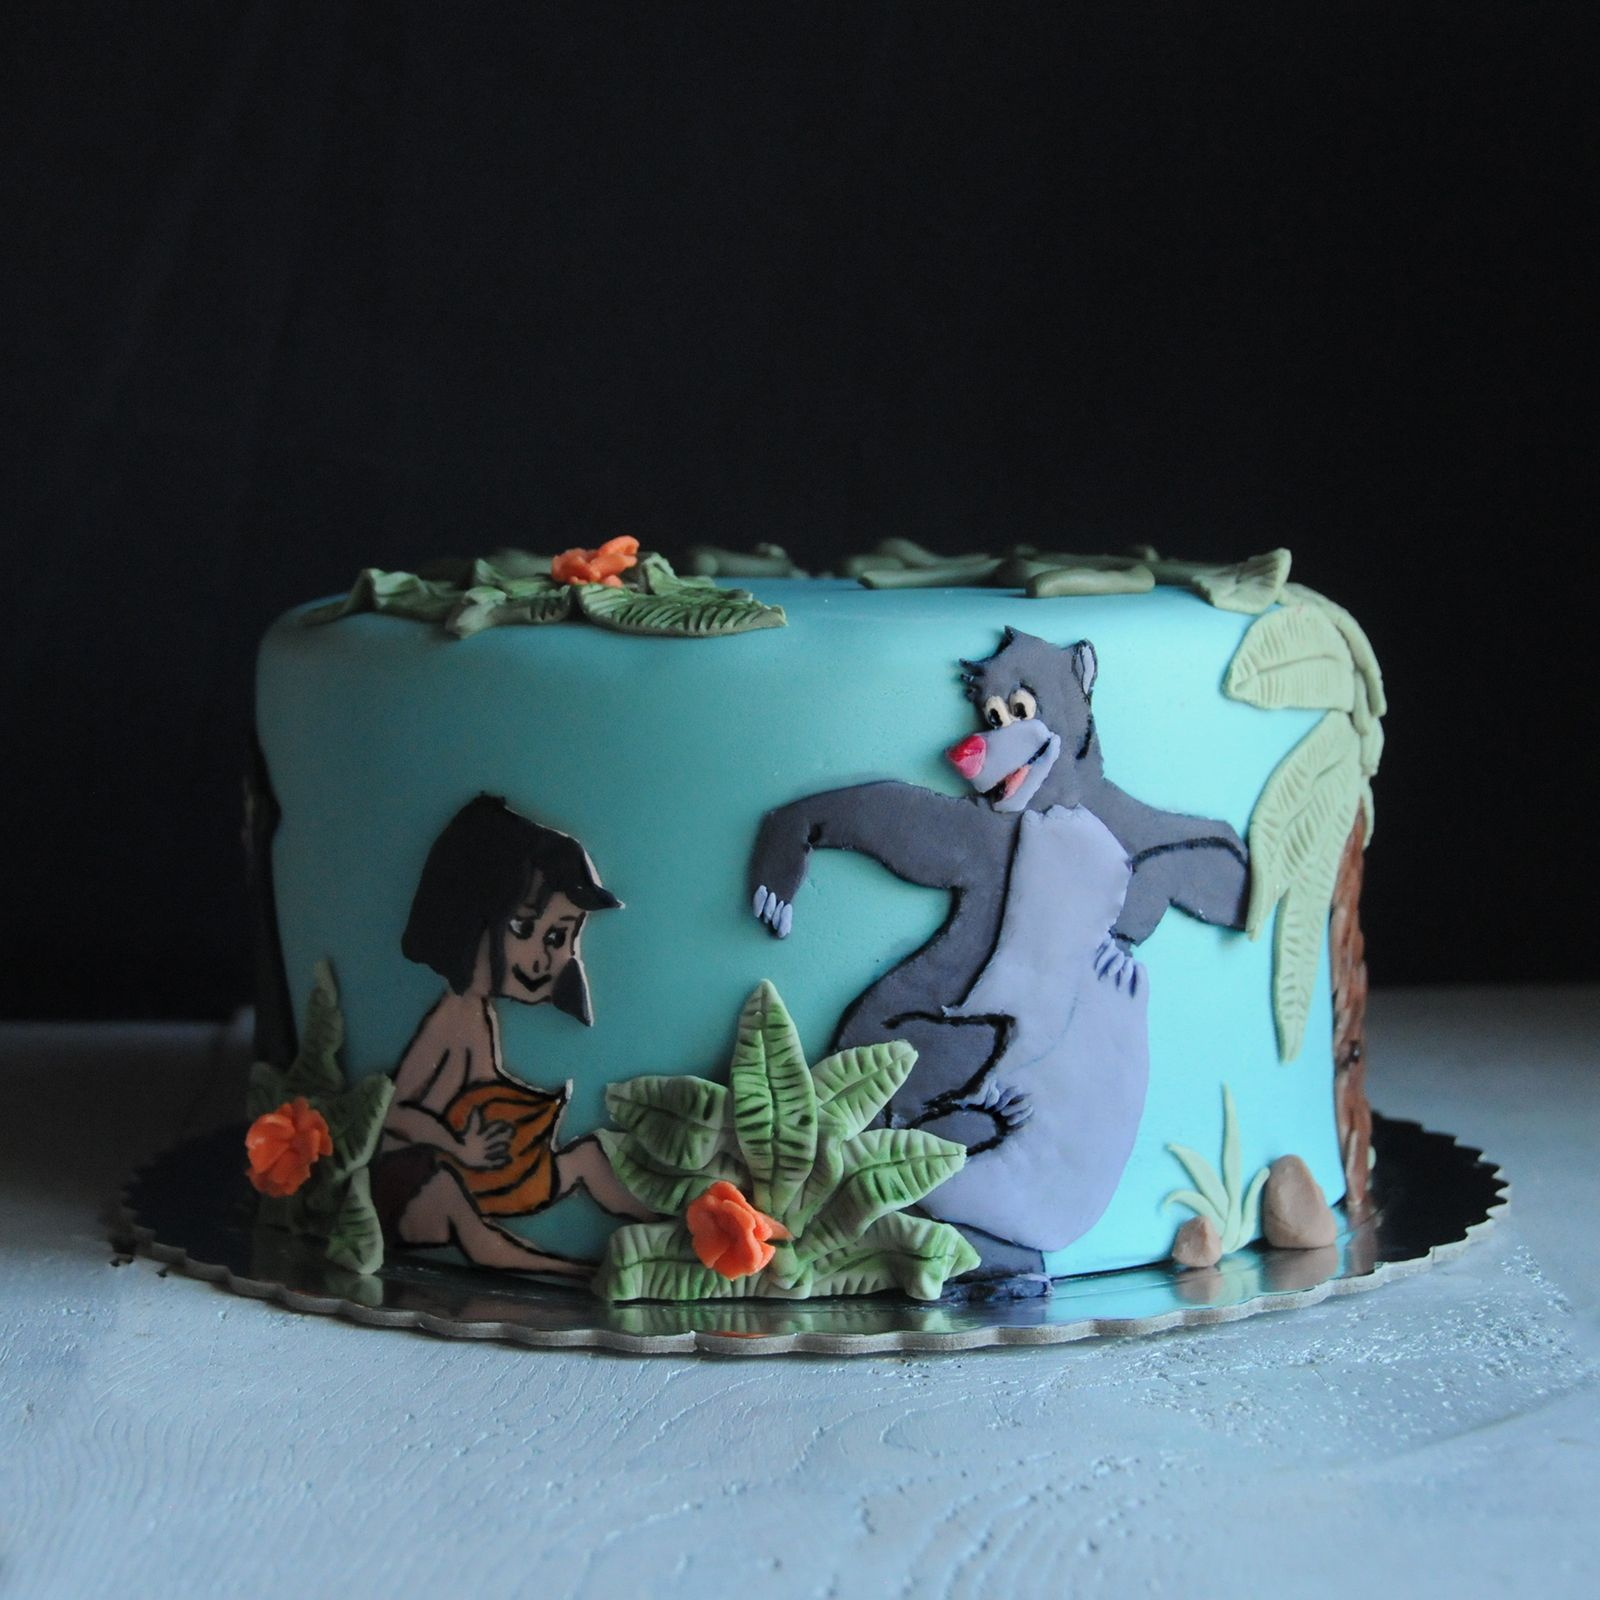 Disney Cake Decorating Book : The Jungle Book Cake is a Nostalgic Disney Sweet Book ...